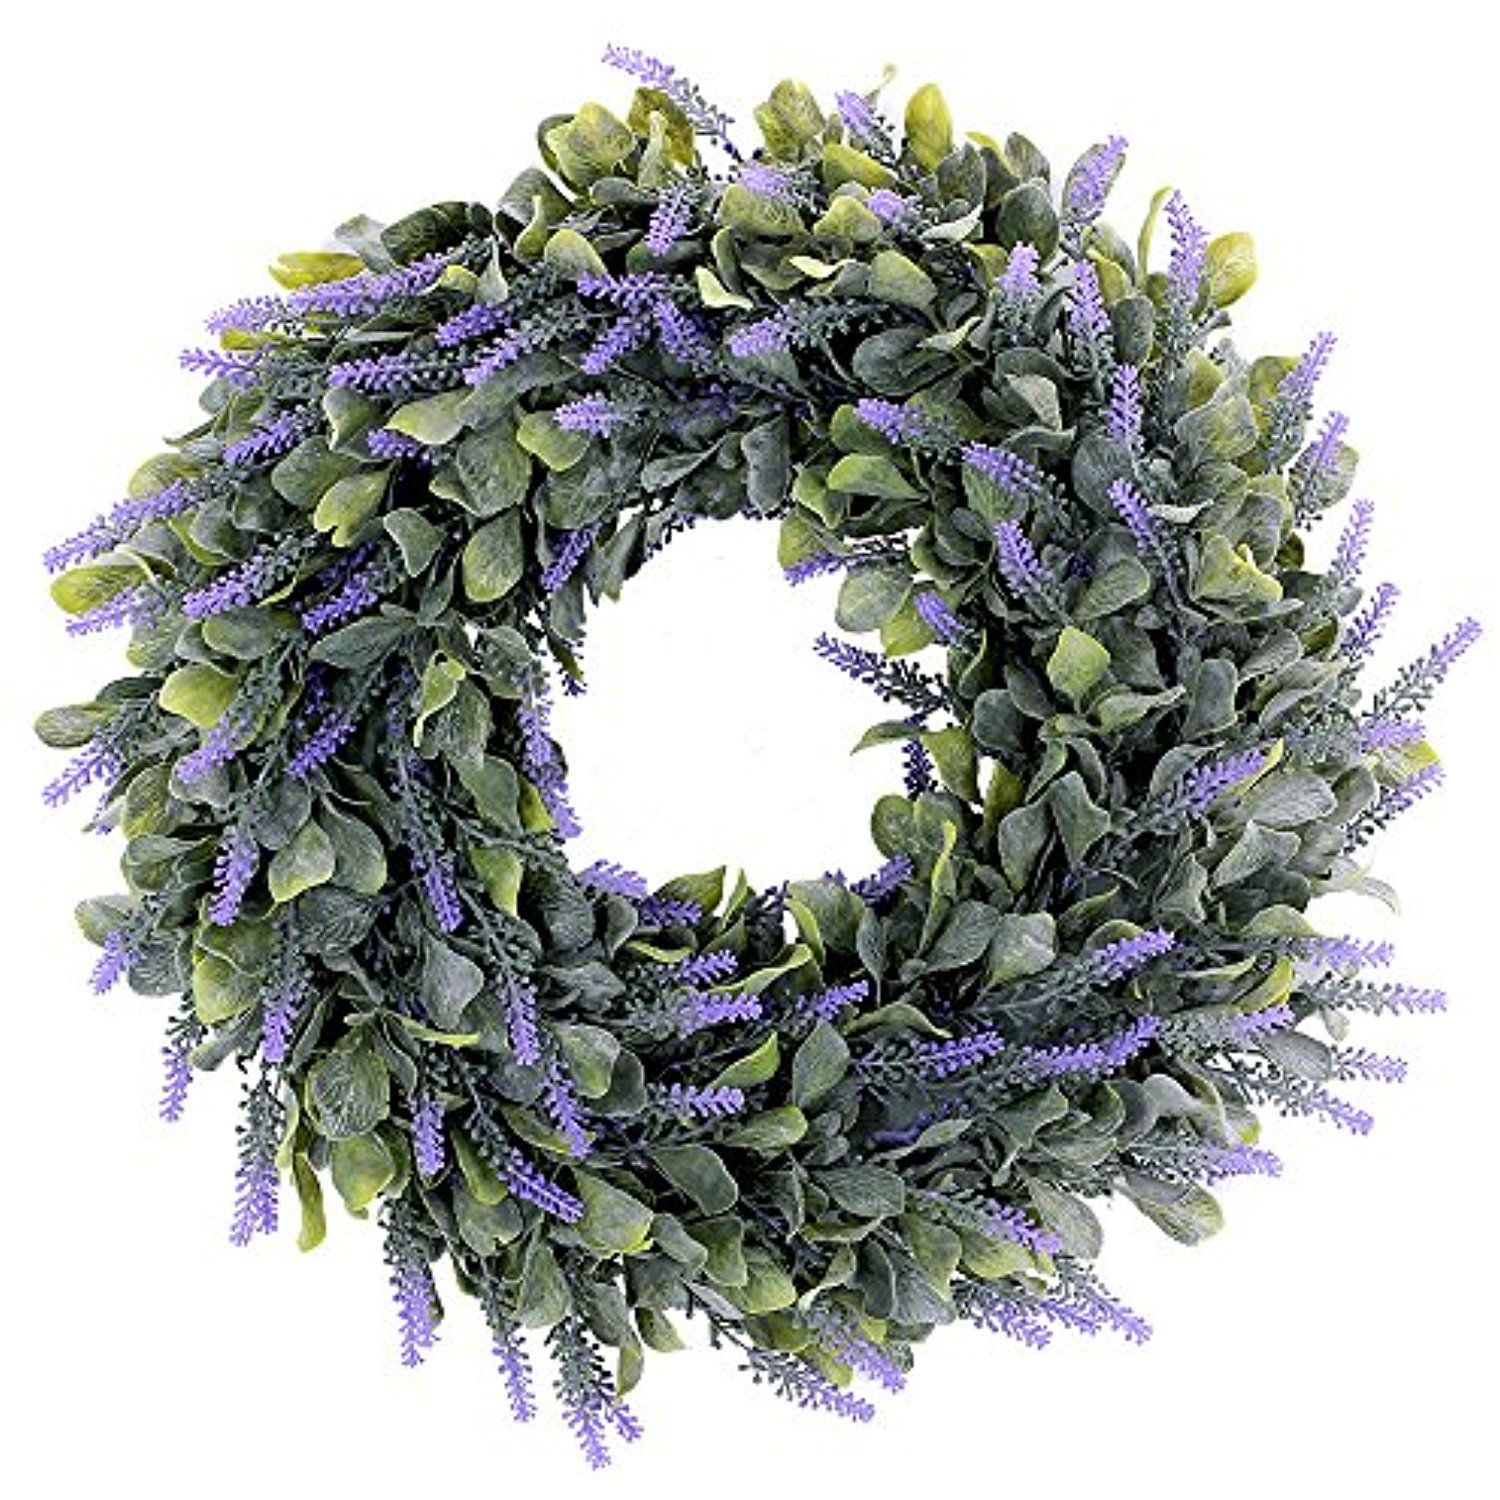 20 Artificial Lavender Wreaths Outdoor Uv Resistant Flowers